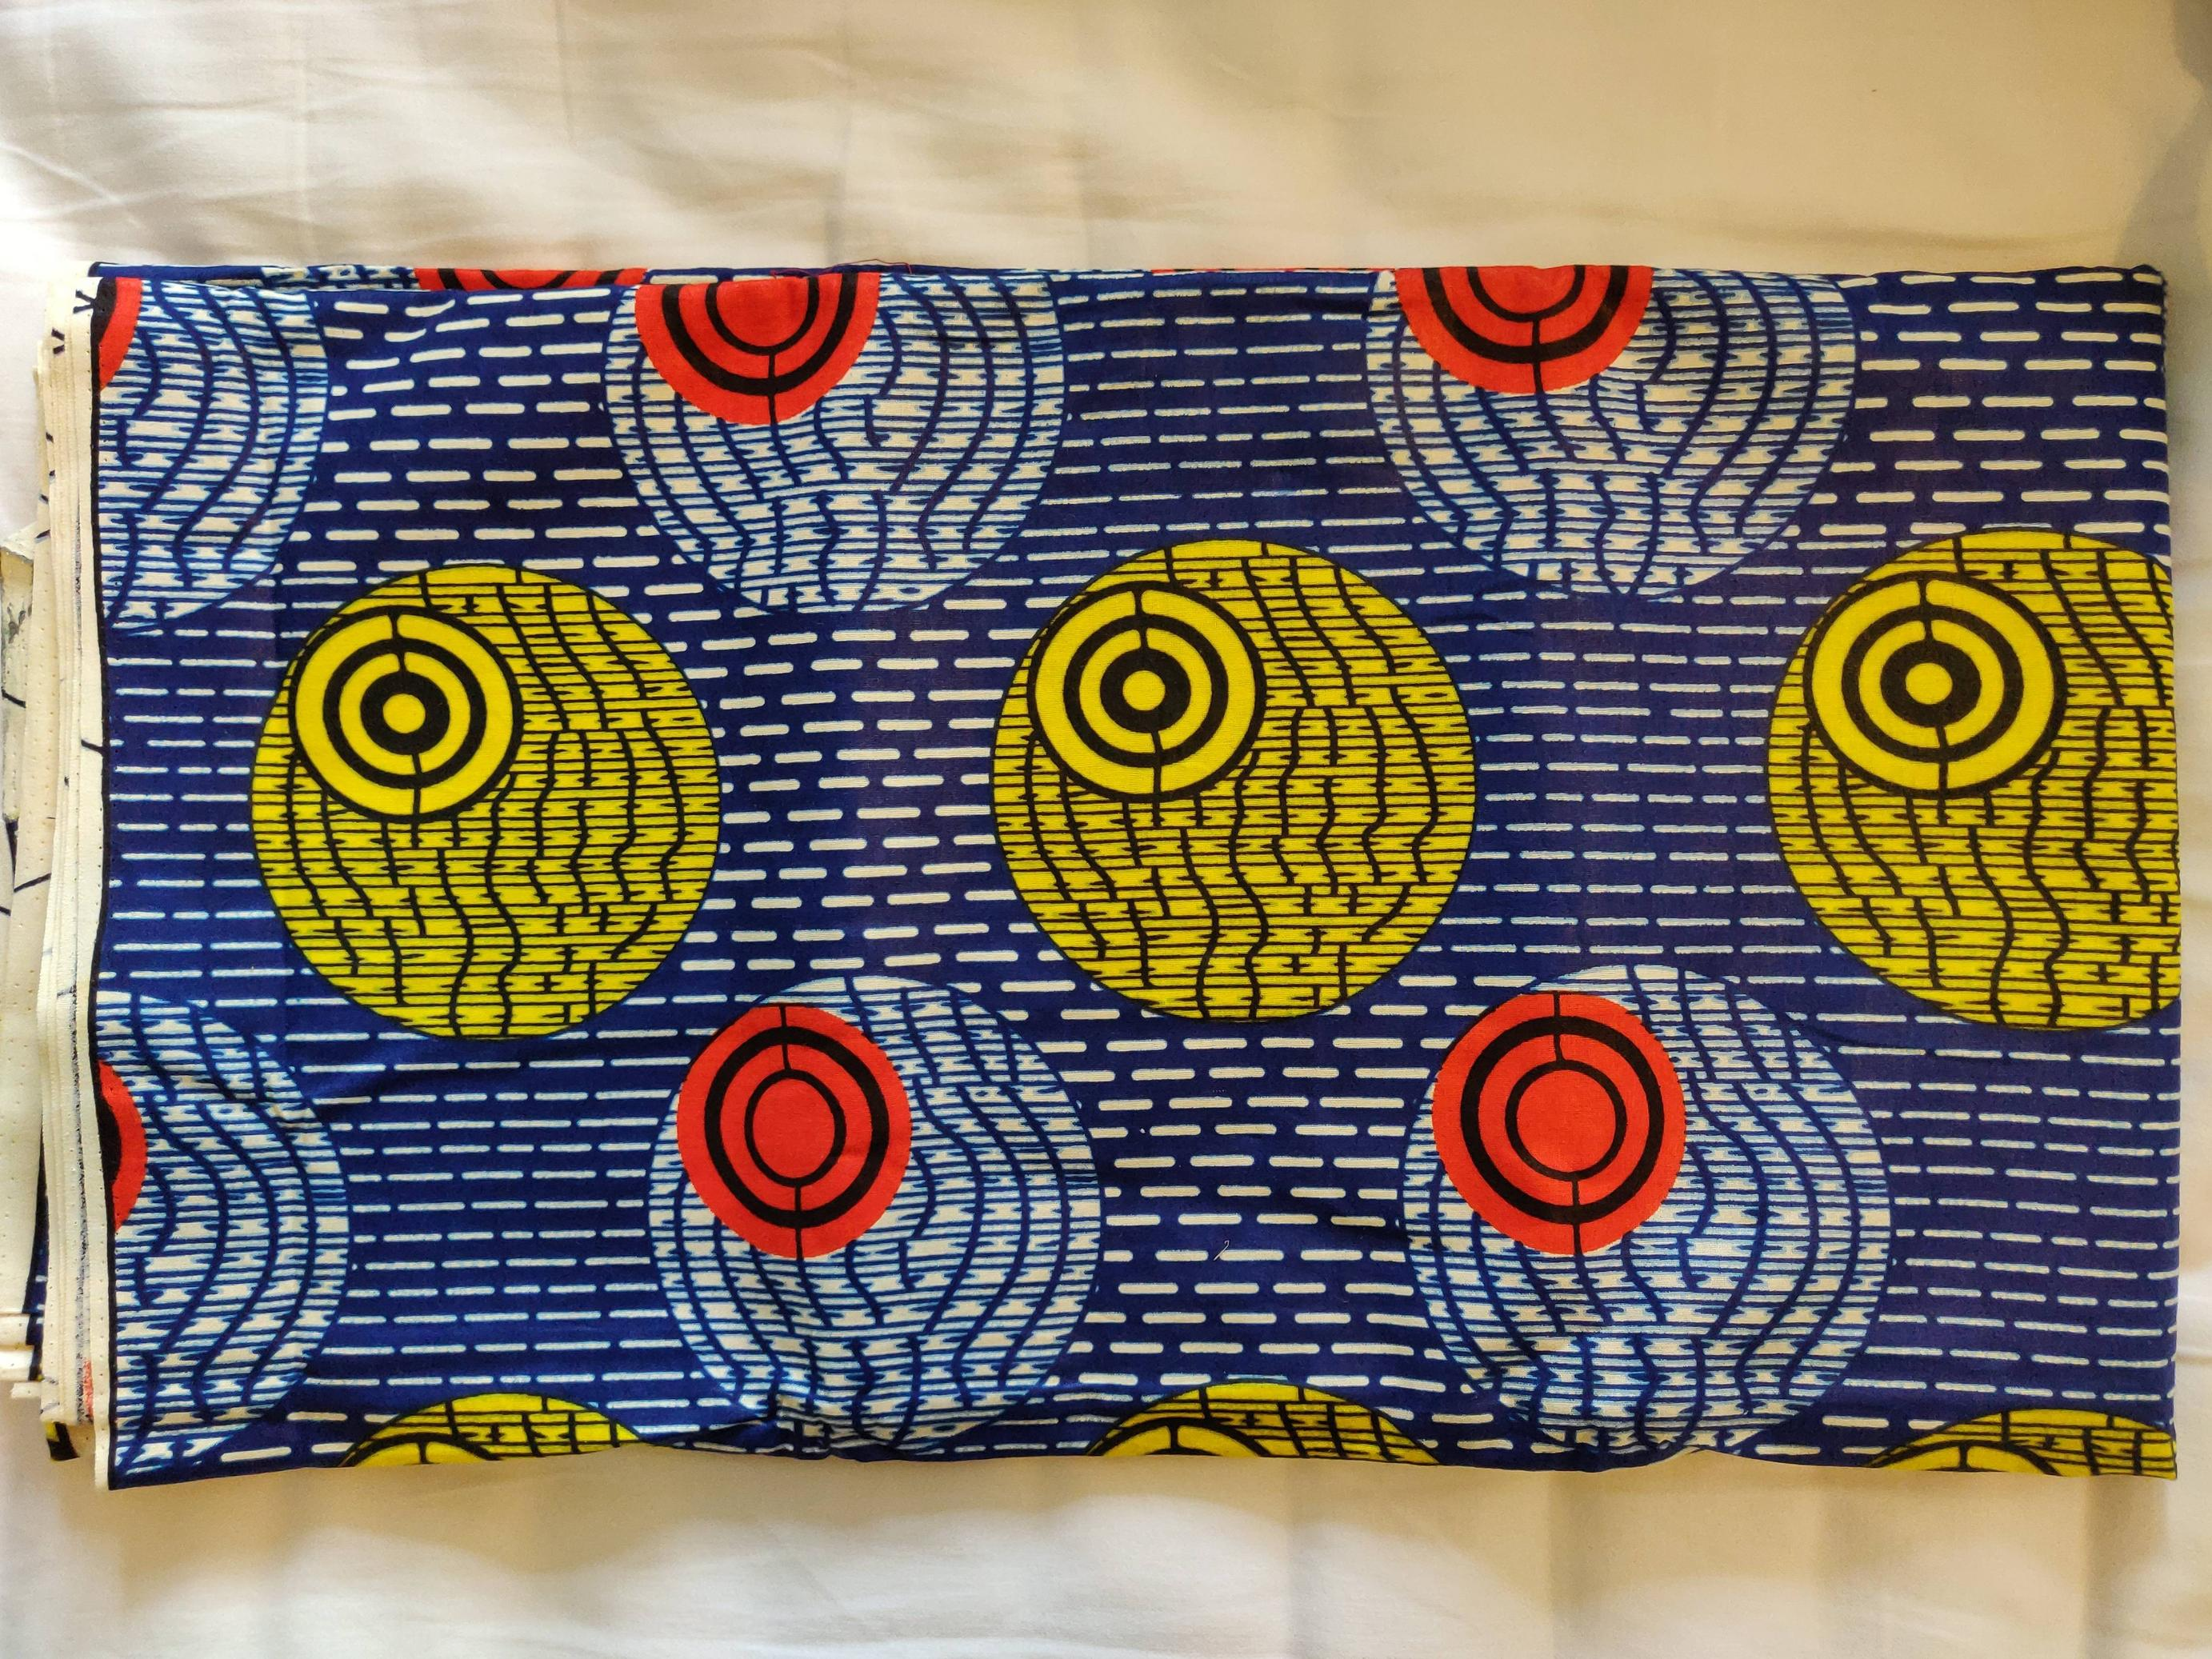 My wife bought some fabric in Sierra Leone. You think the designer was inspired by a small moon?